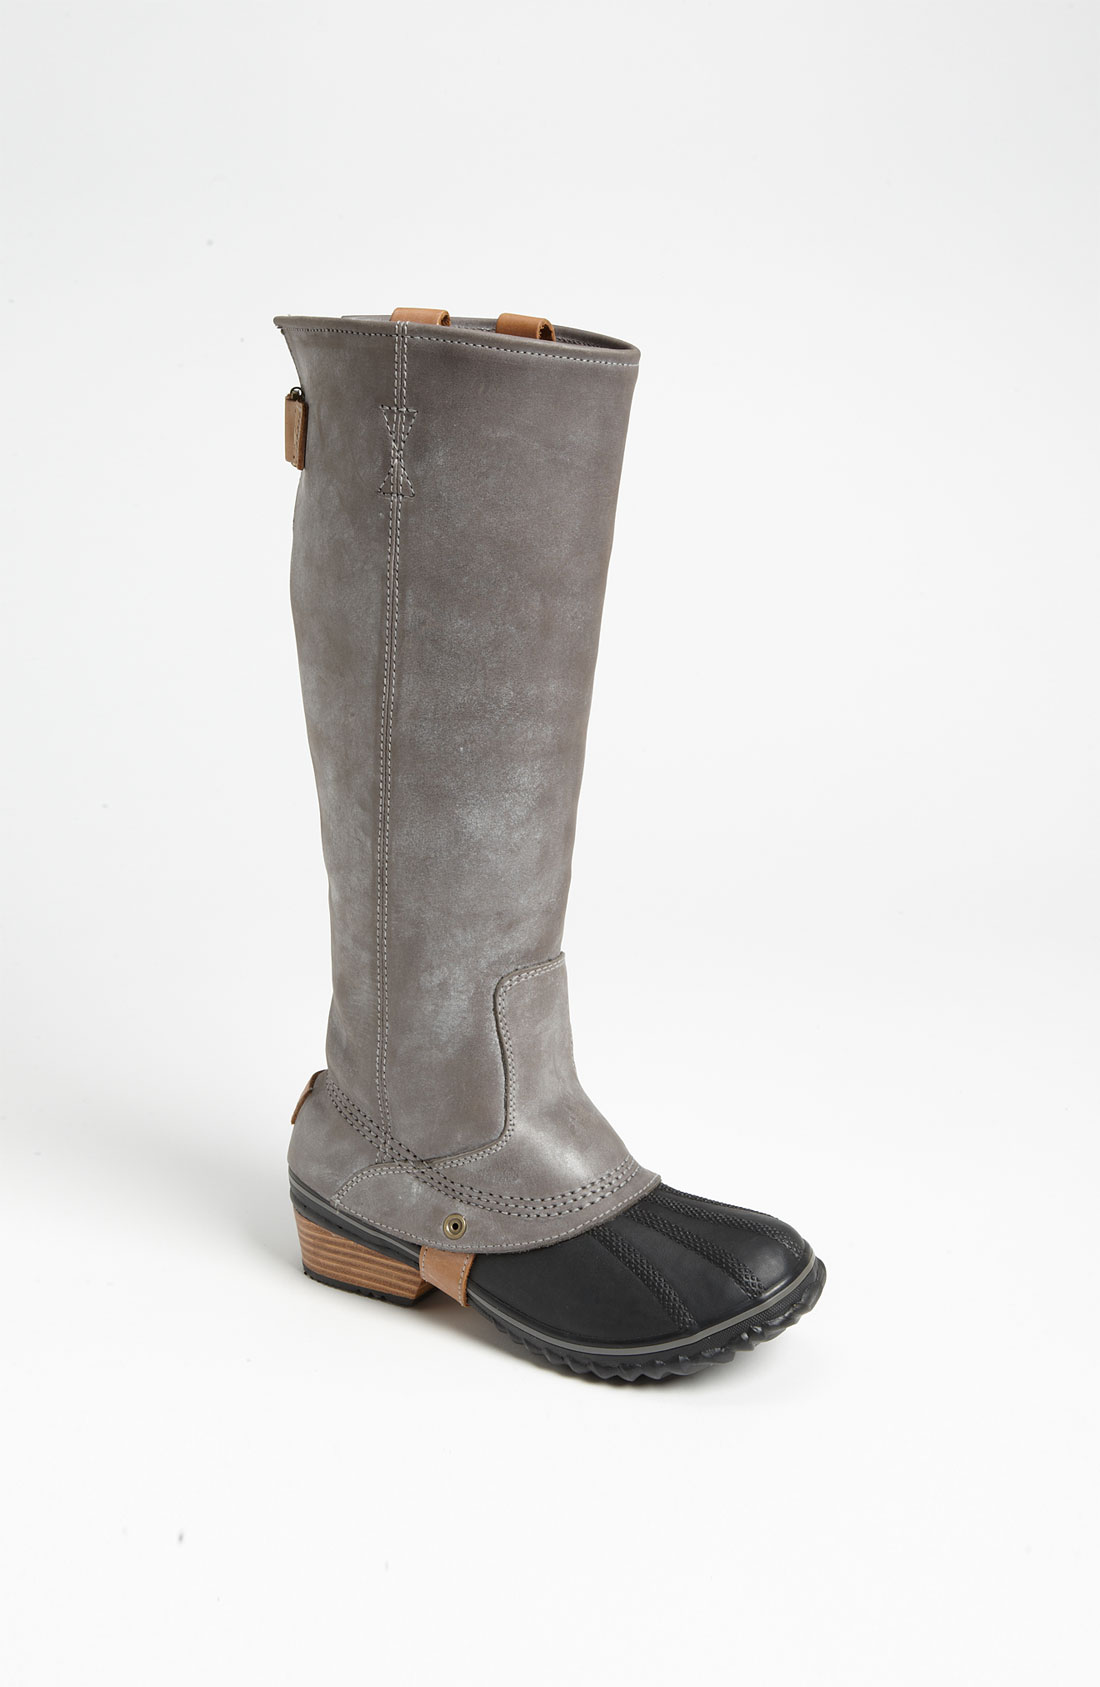 Sorel Slimpack Riding Boot In Gray Charcoal Lyst